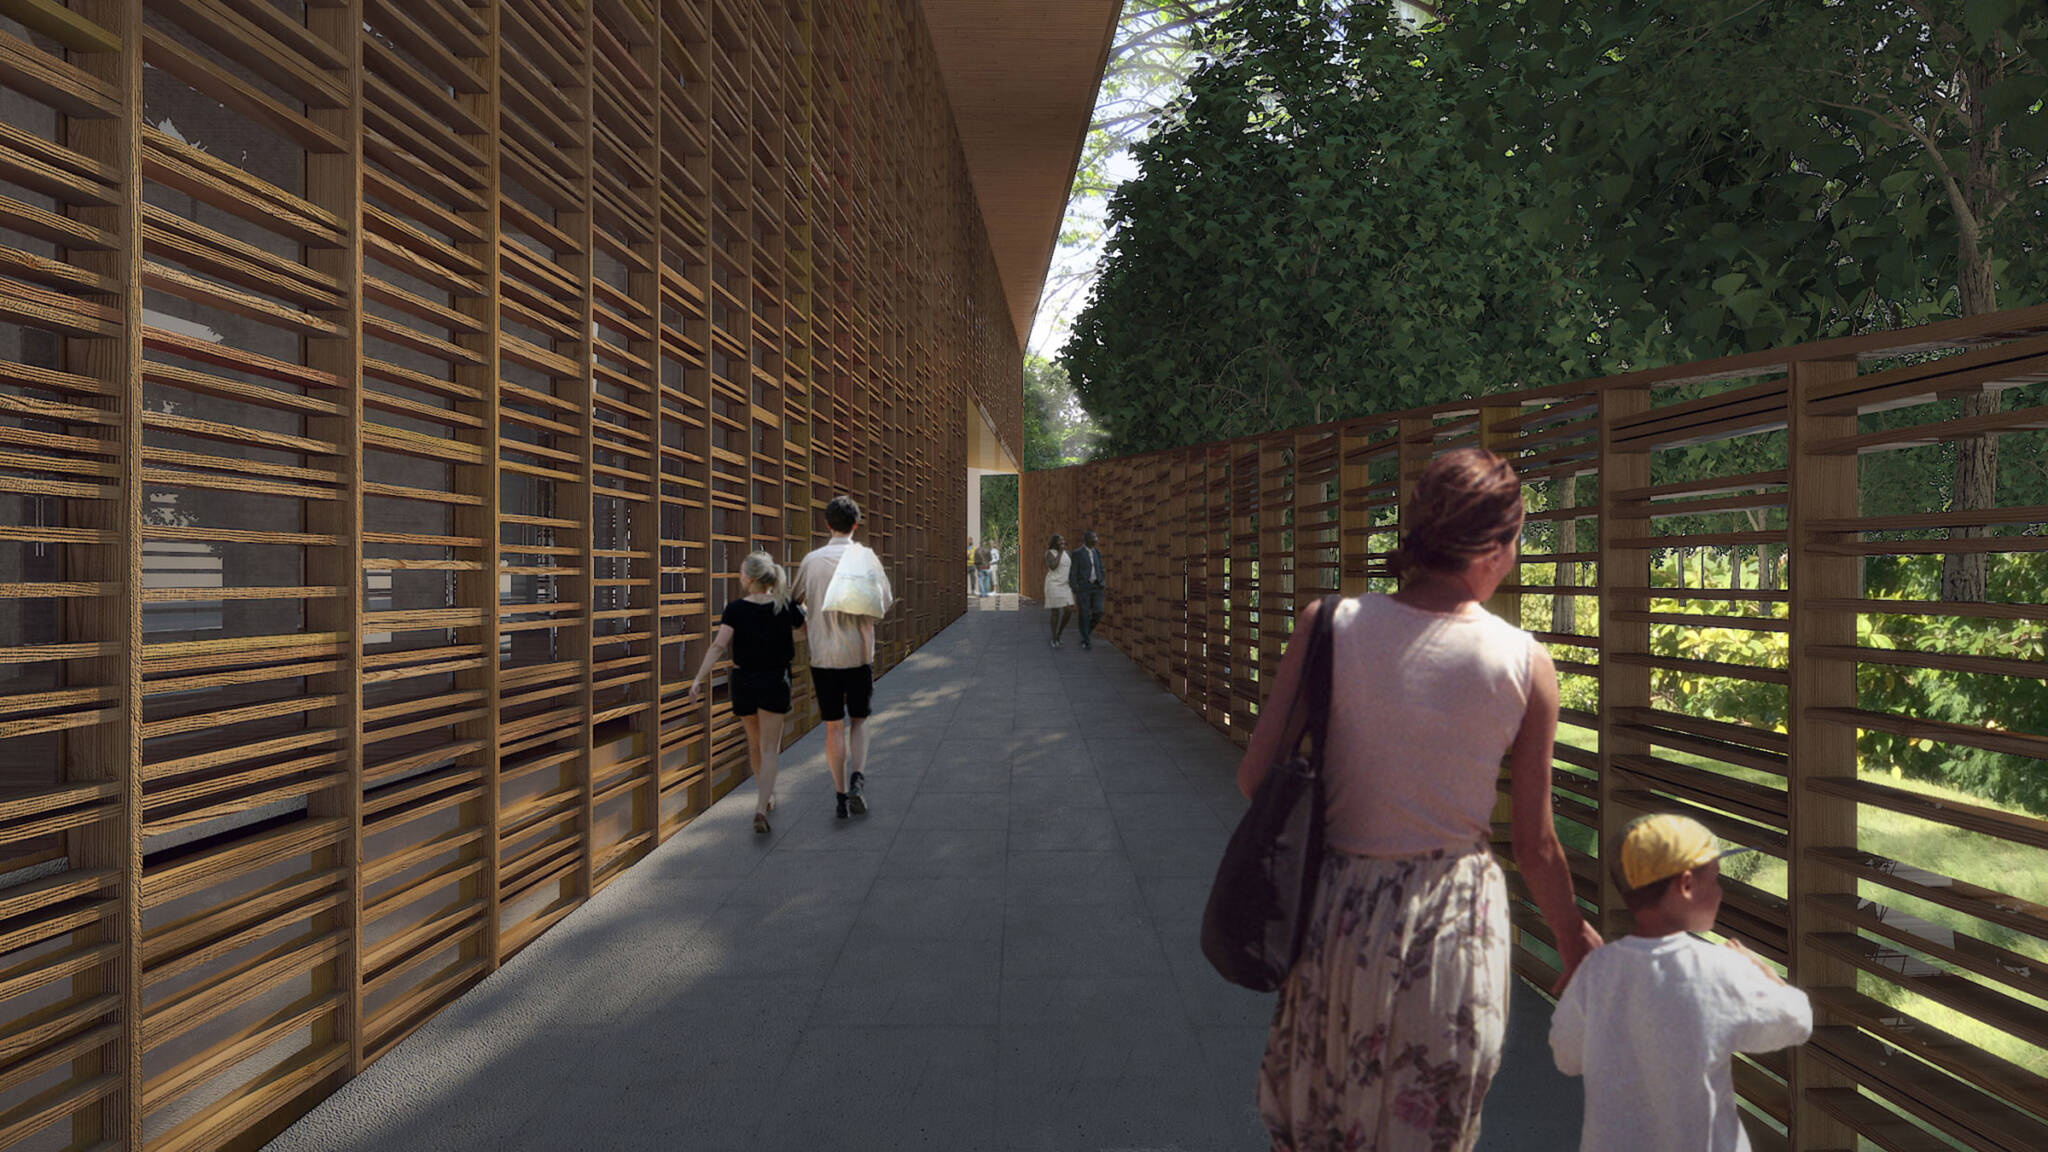 Footway of the Seychelles center project located at Mahé in the Seychelles archipelago designed by the architecture studio Danny Forster & Architecture